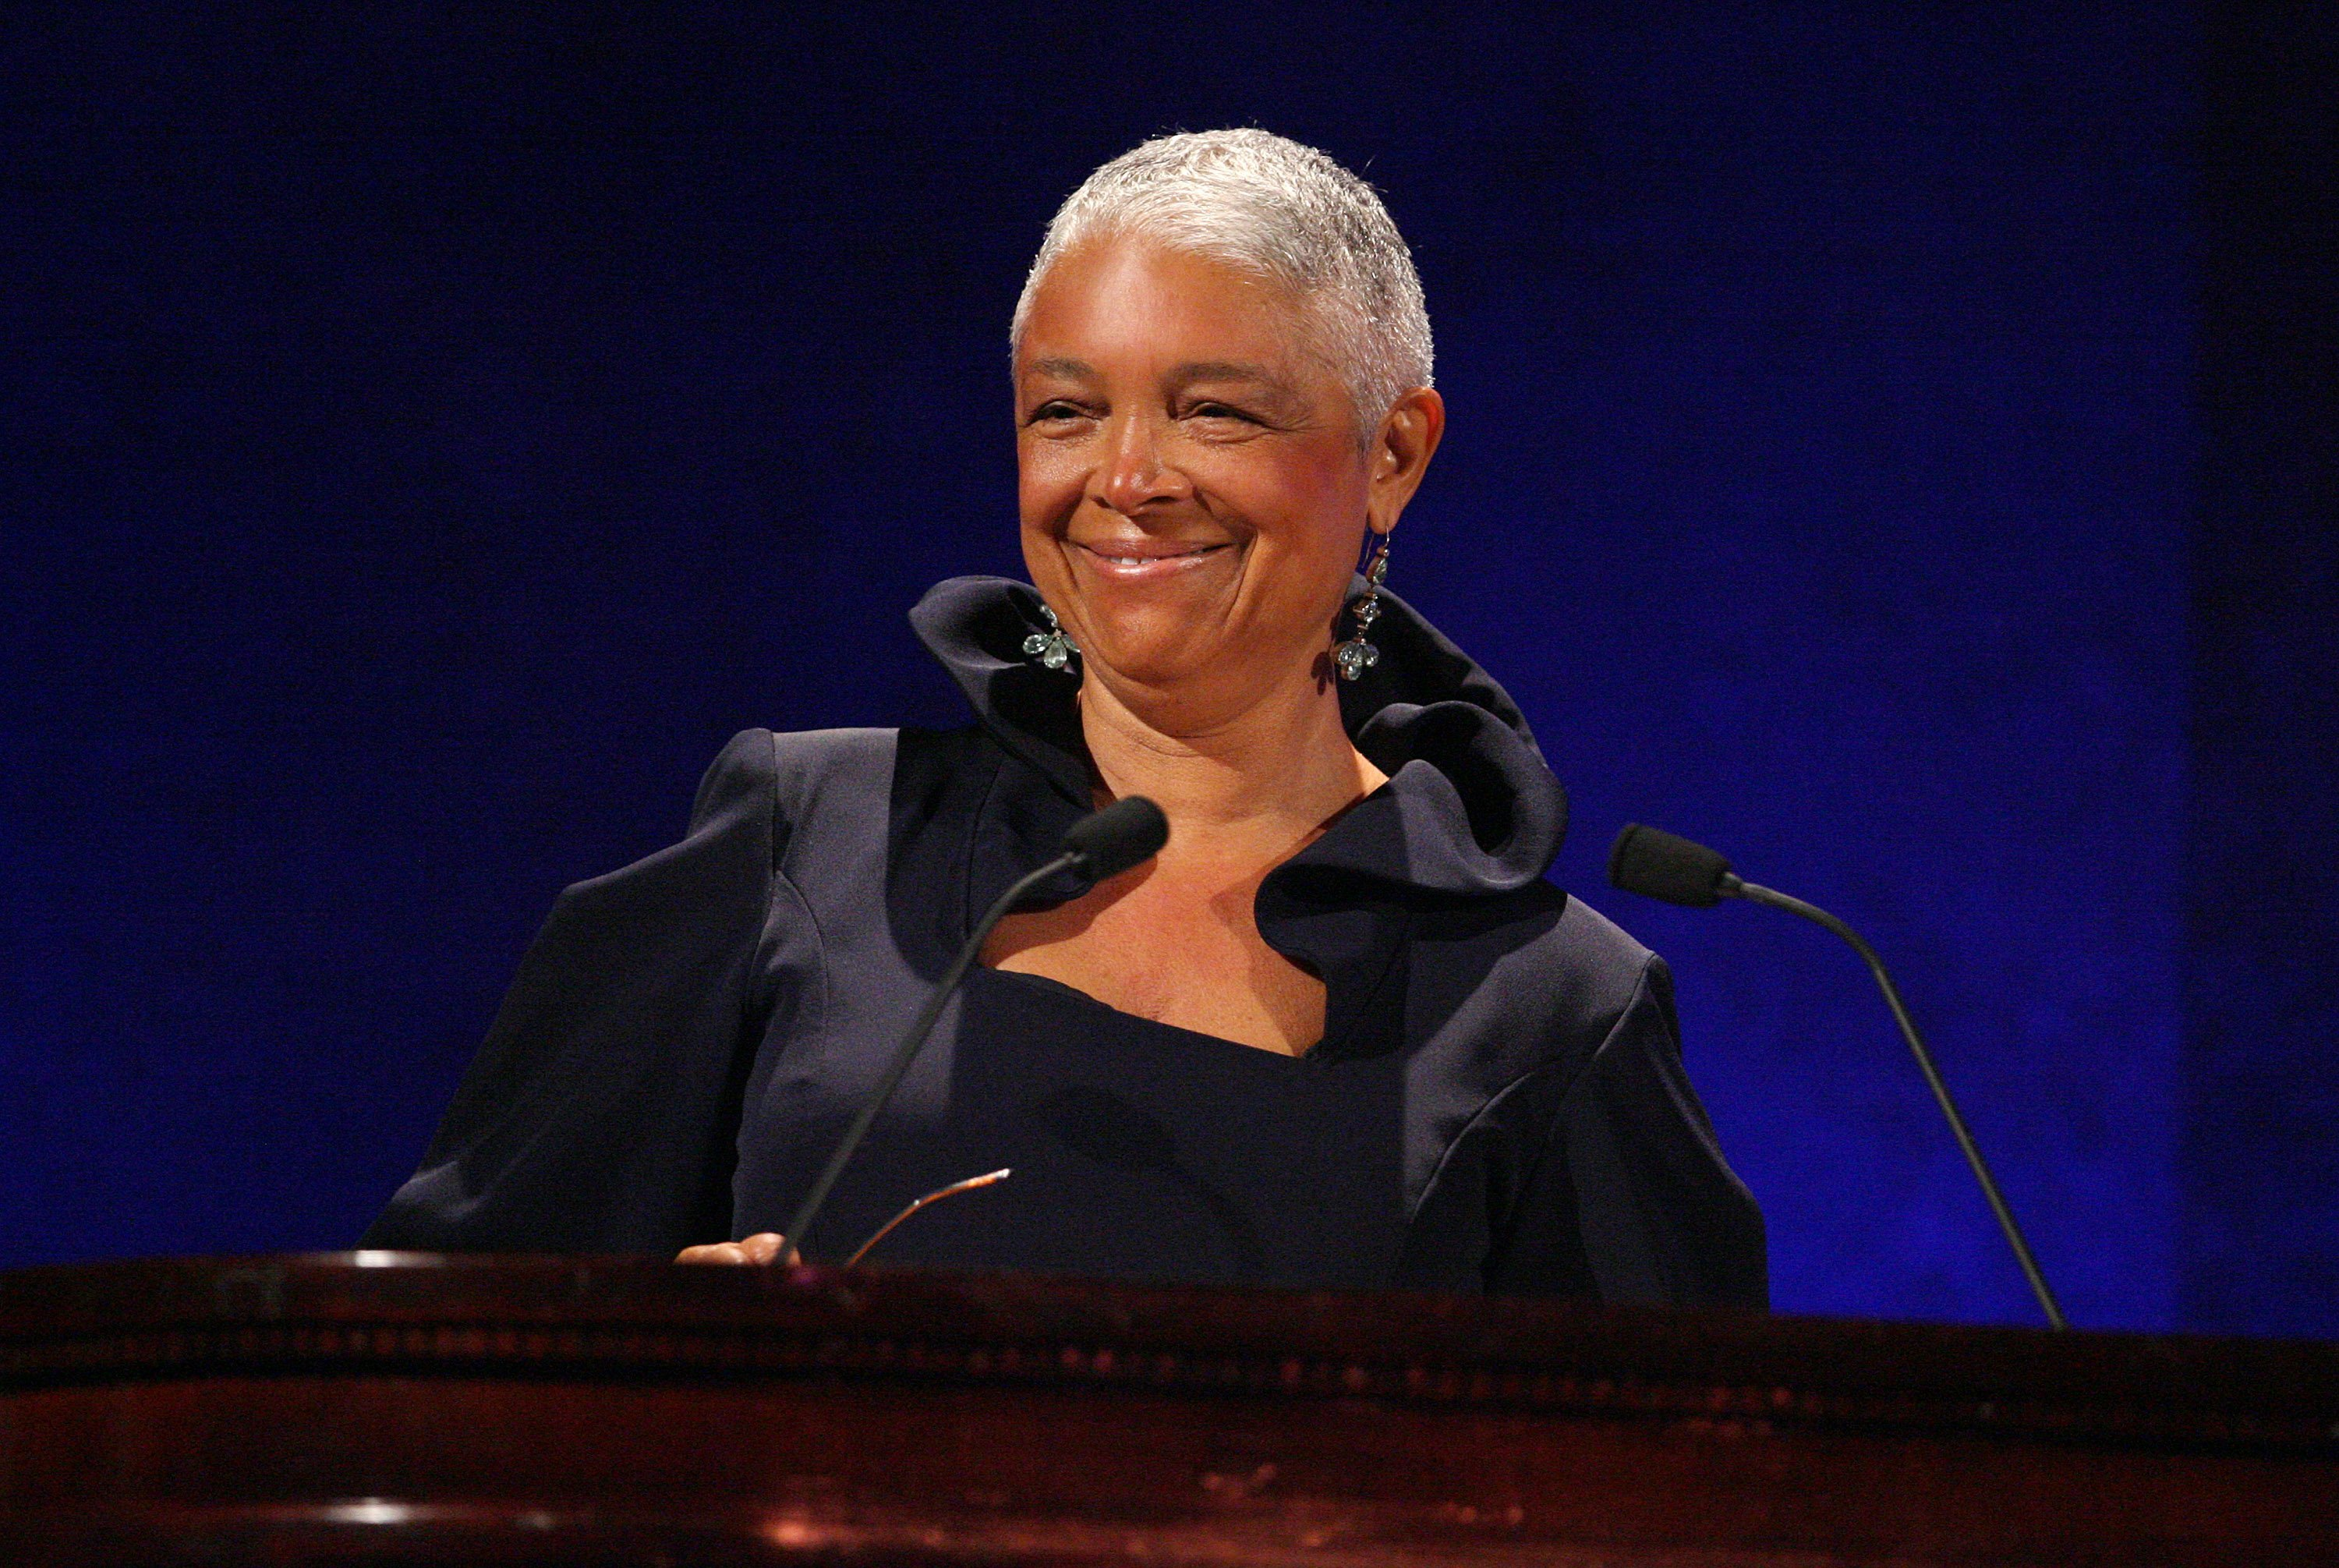 Dr. Camille Cosby speaks on stage at the 35th Anniversary of the Jackie Robinson Foundation hosted by Bill Cosby at the Waldorf Astoria hotel on March 3, 2008, in New York City.   Source: Getty Images.